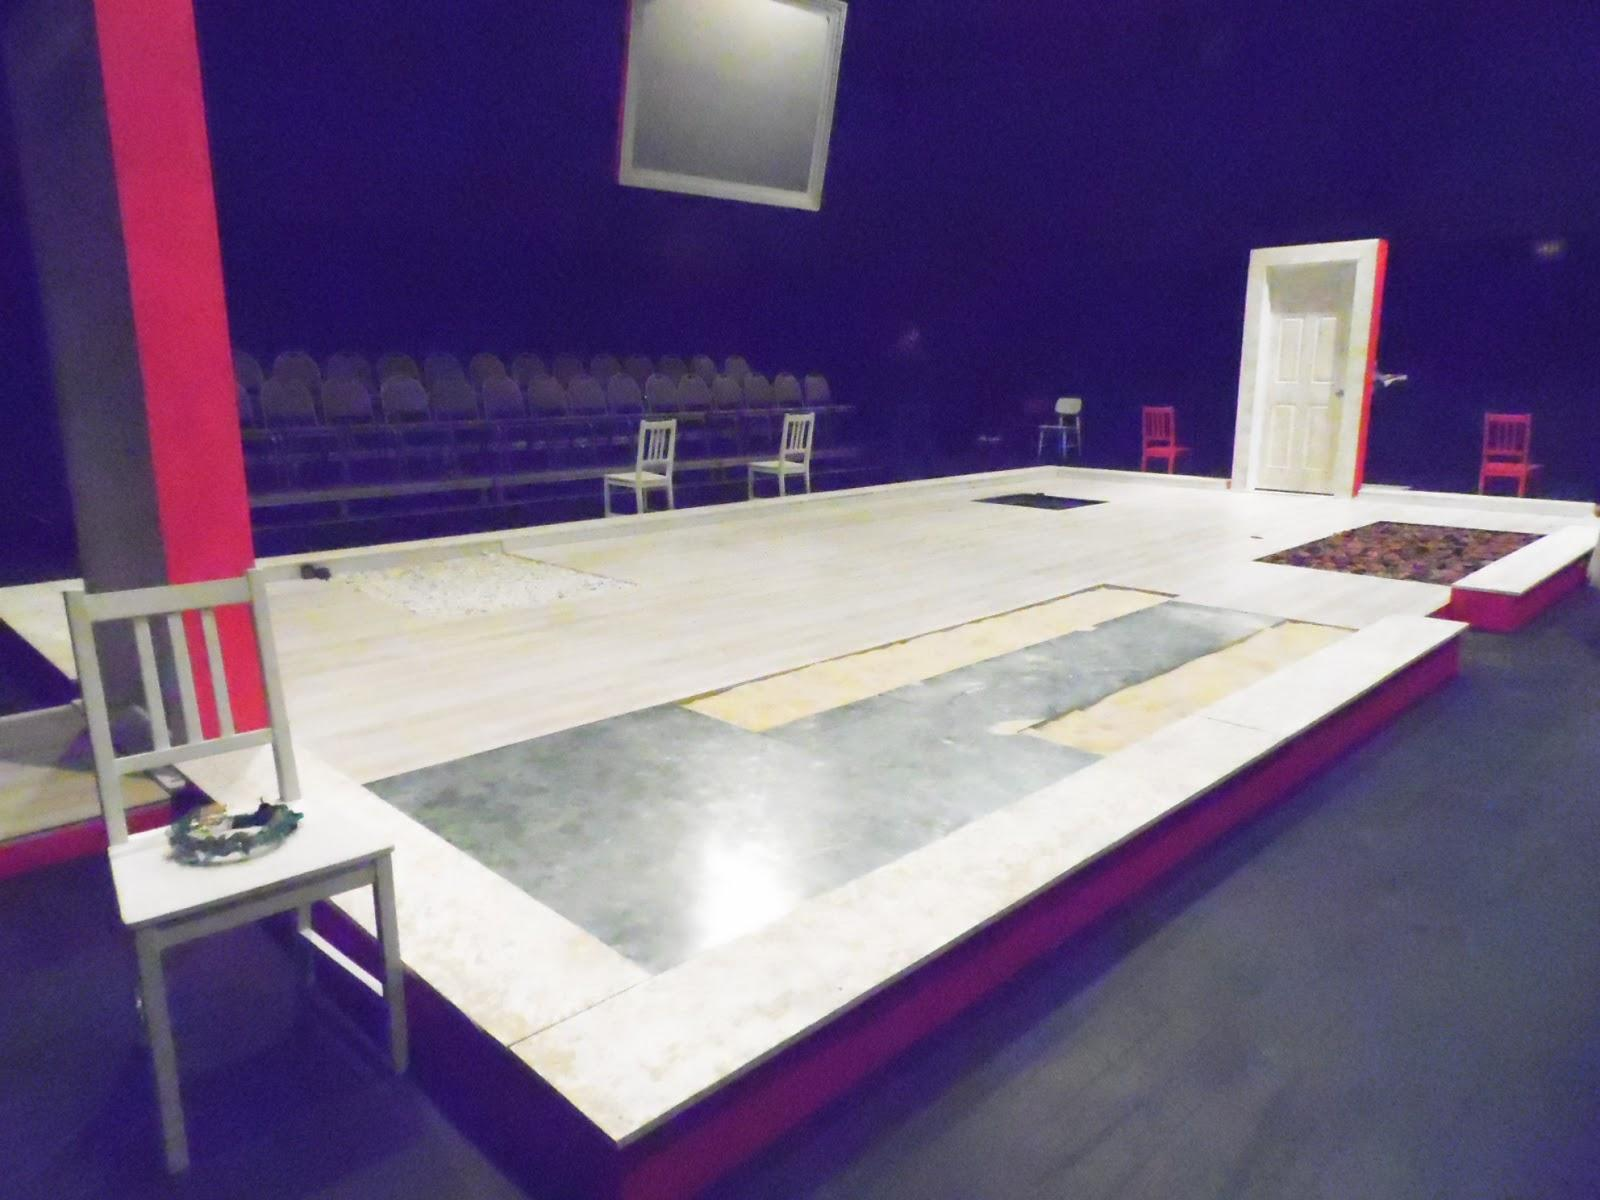 Stage design for the play Bloodwedding